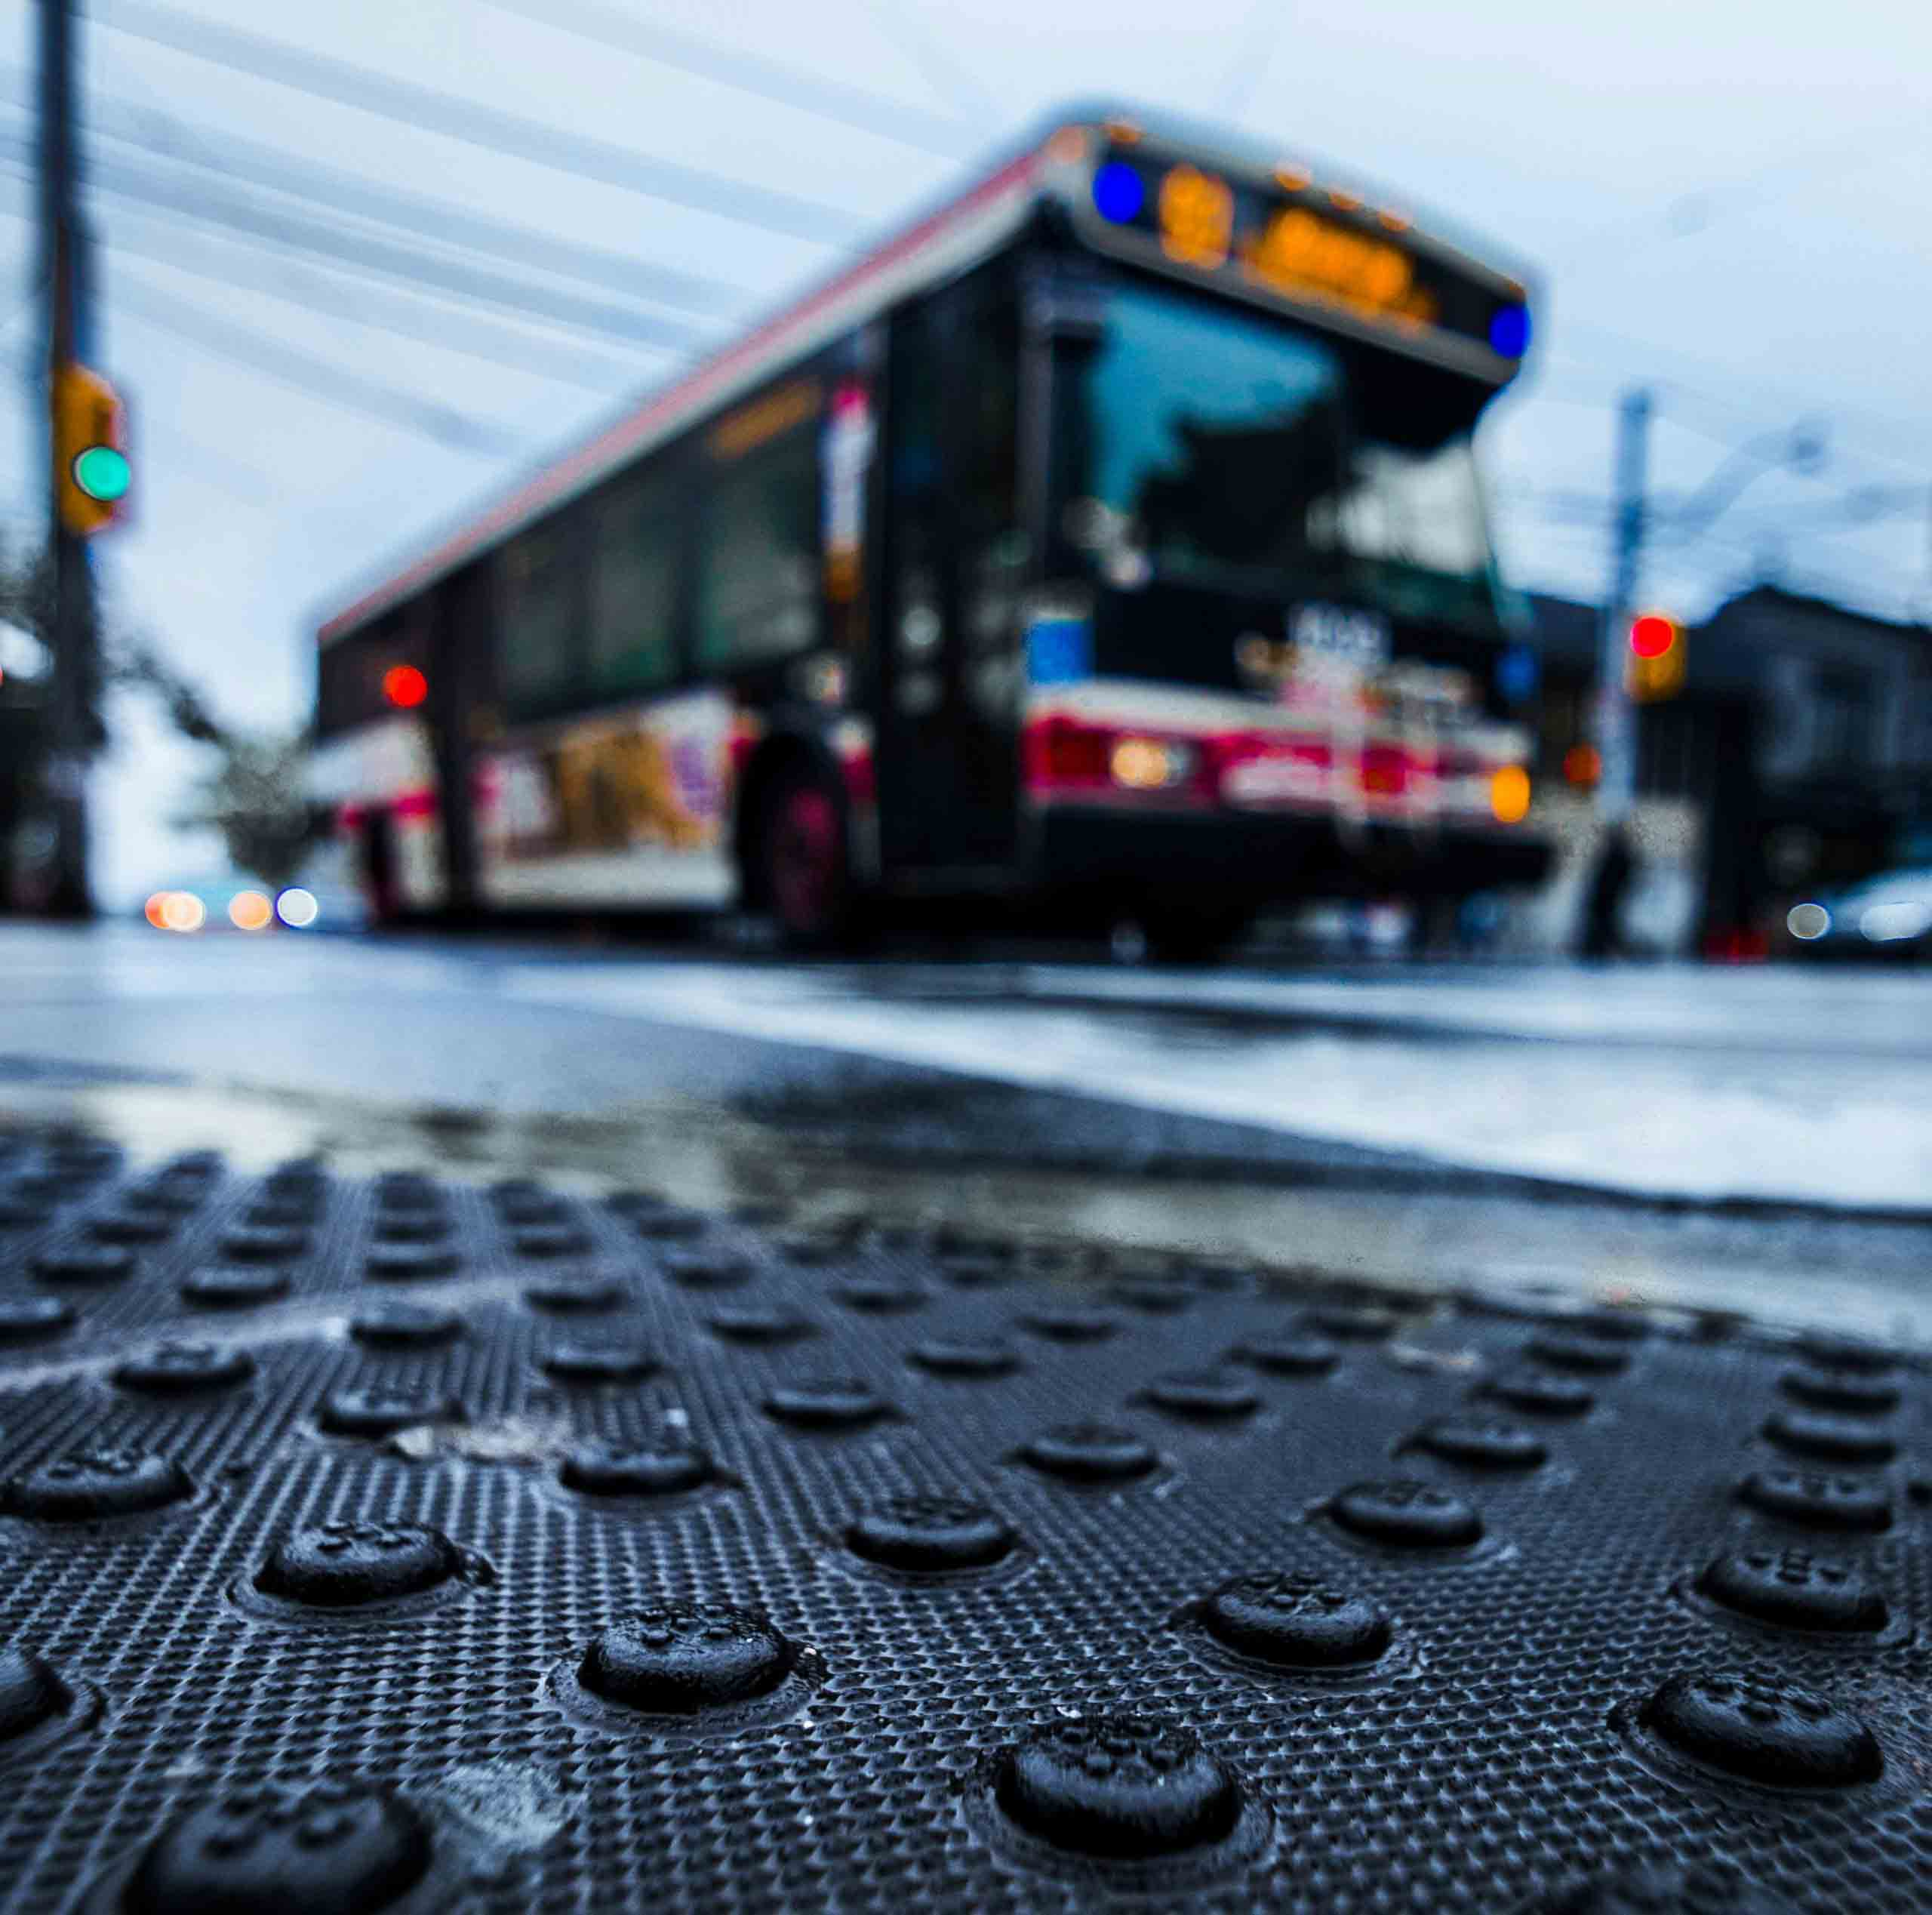 Low angle shot of Toronto transit bus driving past street corner with lots of texture from tactile walking surface indicators.